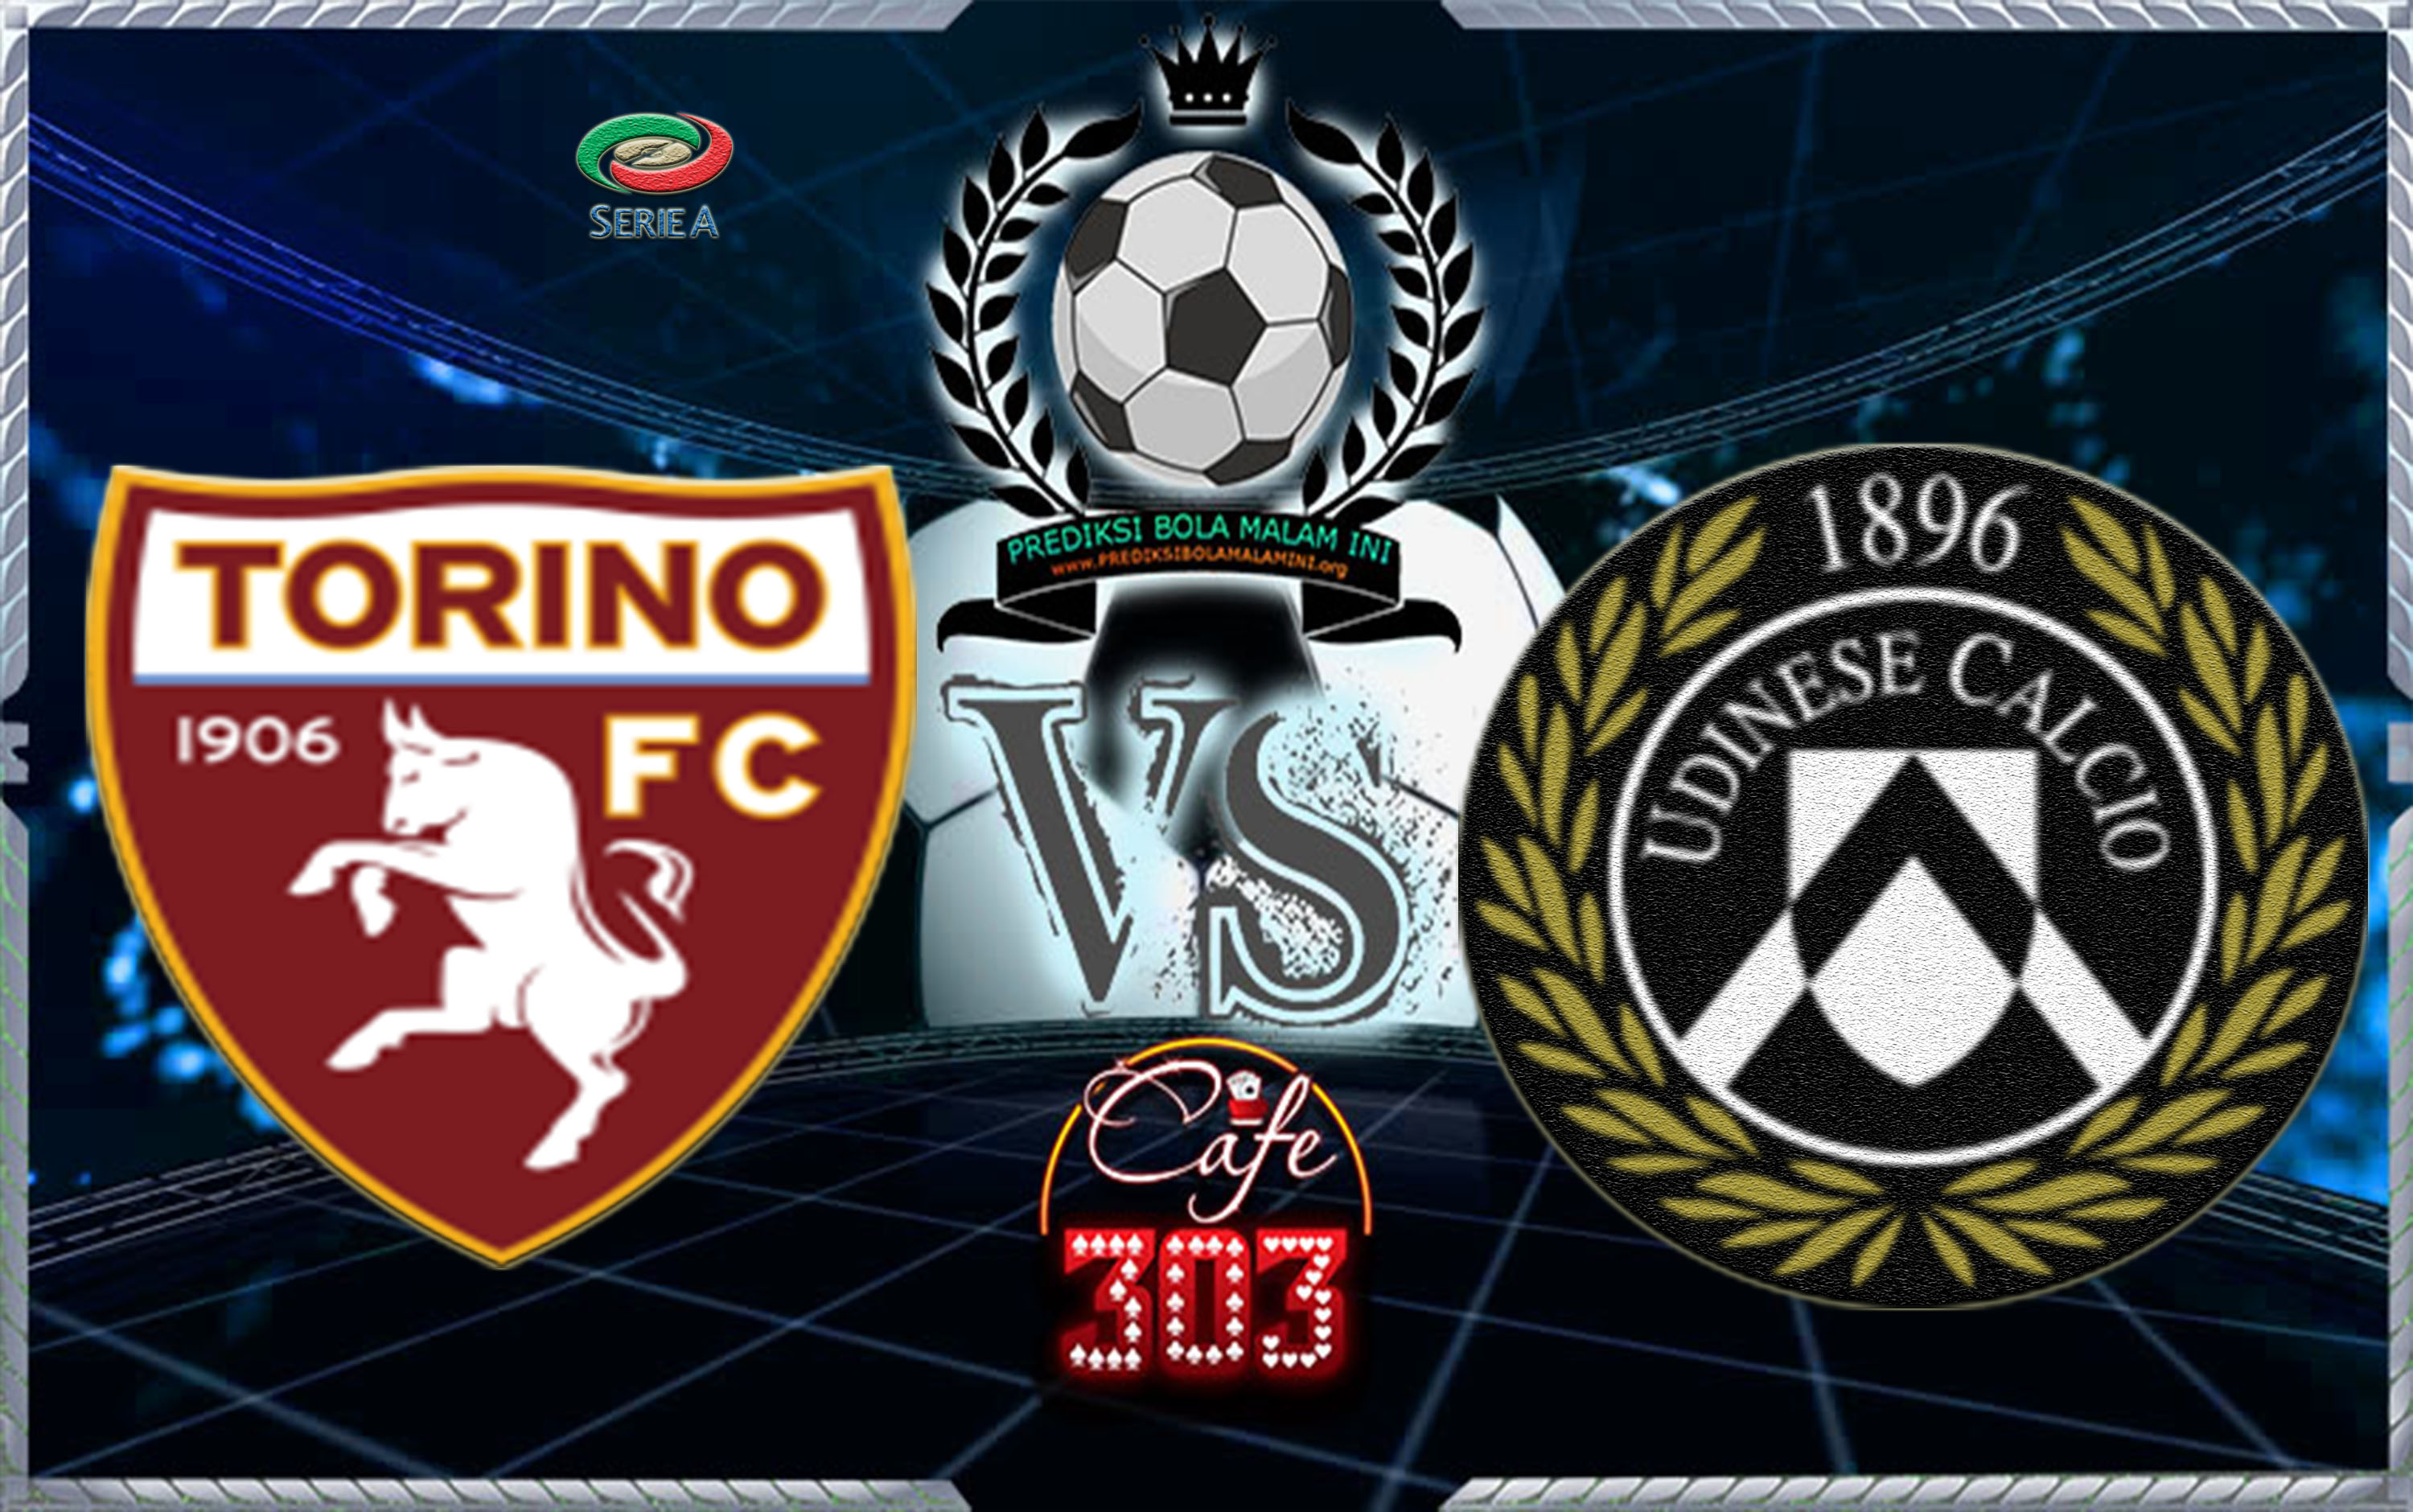 Prediksi Sepatu Turin Vs Udinese 11 Februari 2018 &quot;width =&quot; 640 &quot;height =&quot; 401 &quot;/&gt; </p> <p><strong> <span style=